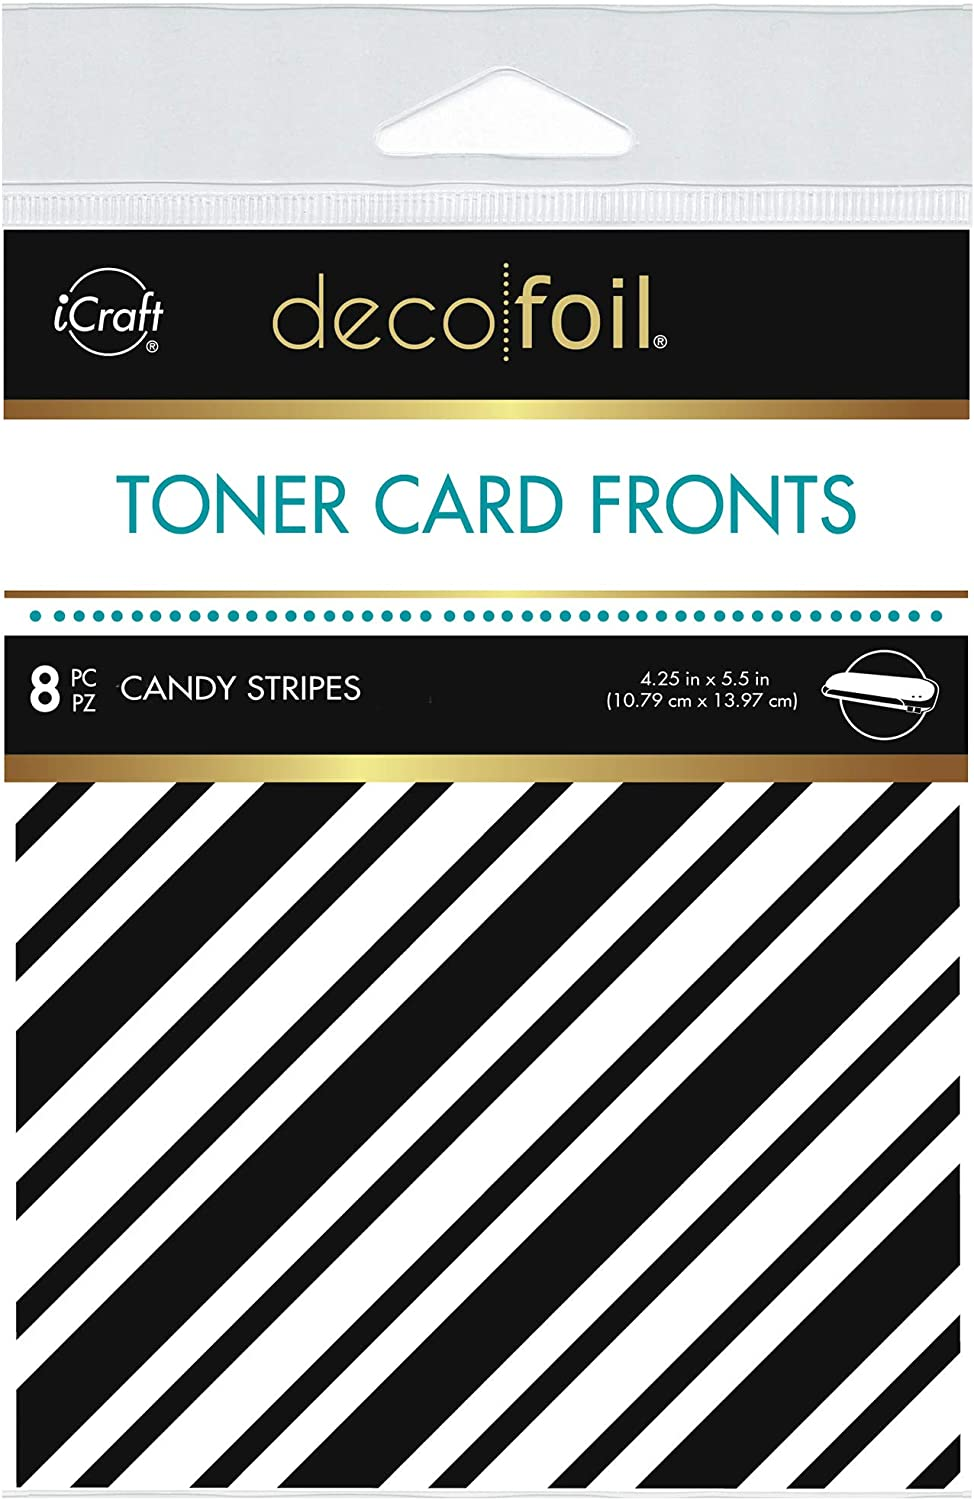 iCraft Deco Foil White Toner Card Fronts, Candy Stripes, 4.25